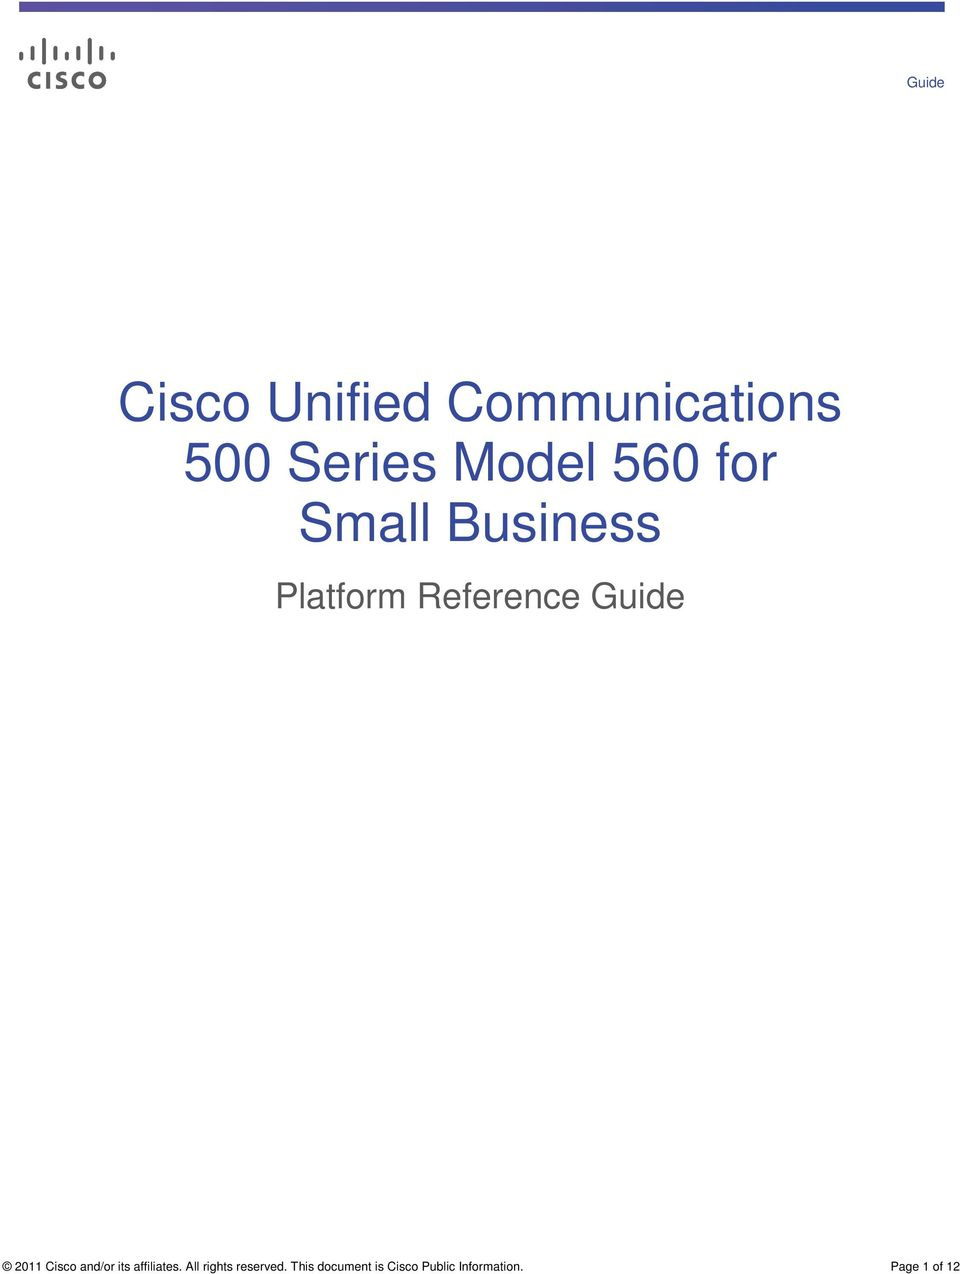 Cisco and/or its affiliates. All rights reserved.